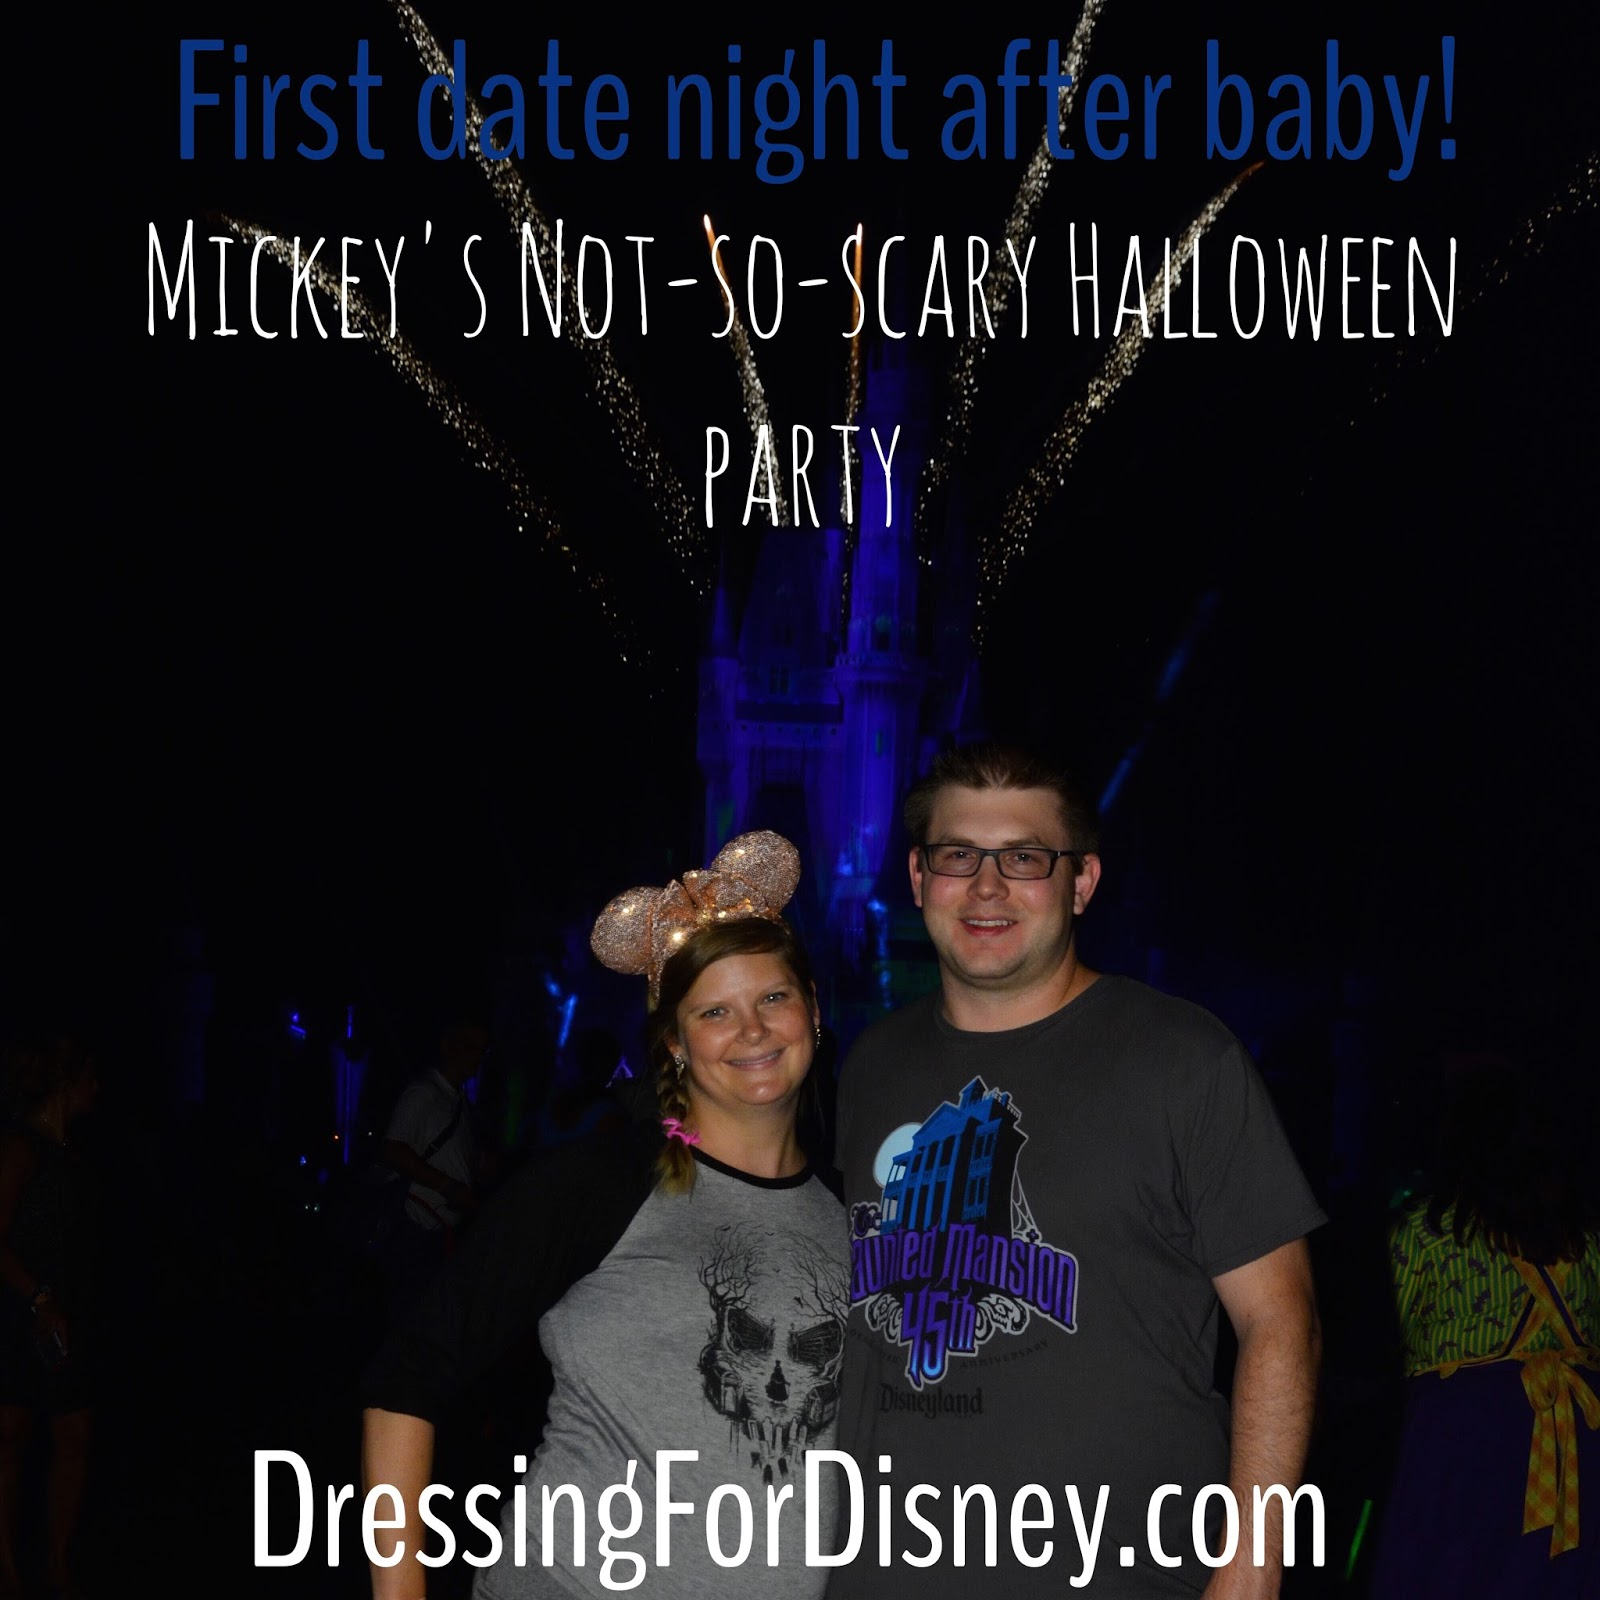 dressing for disney: our first 'date night'- mickey's not-so-scary